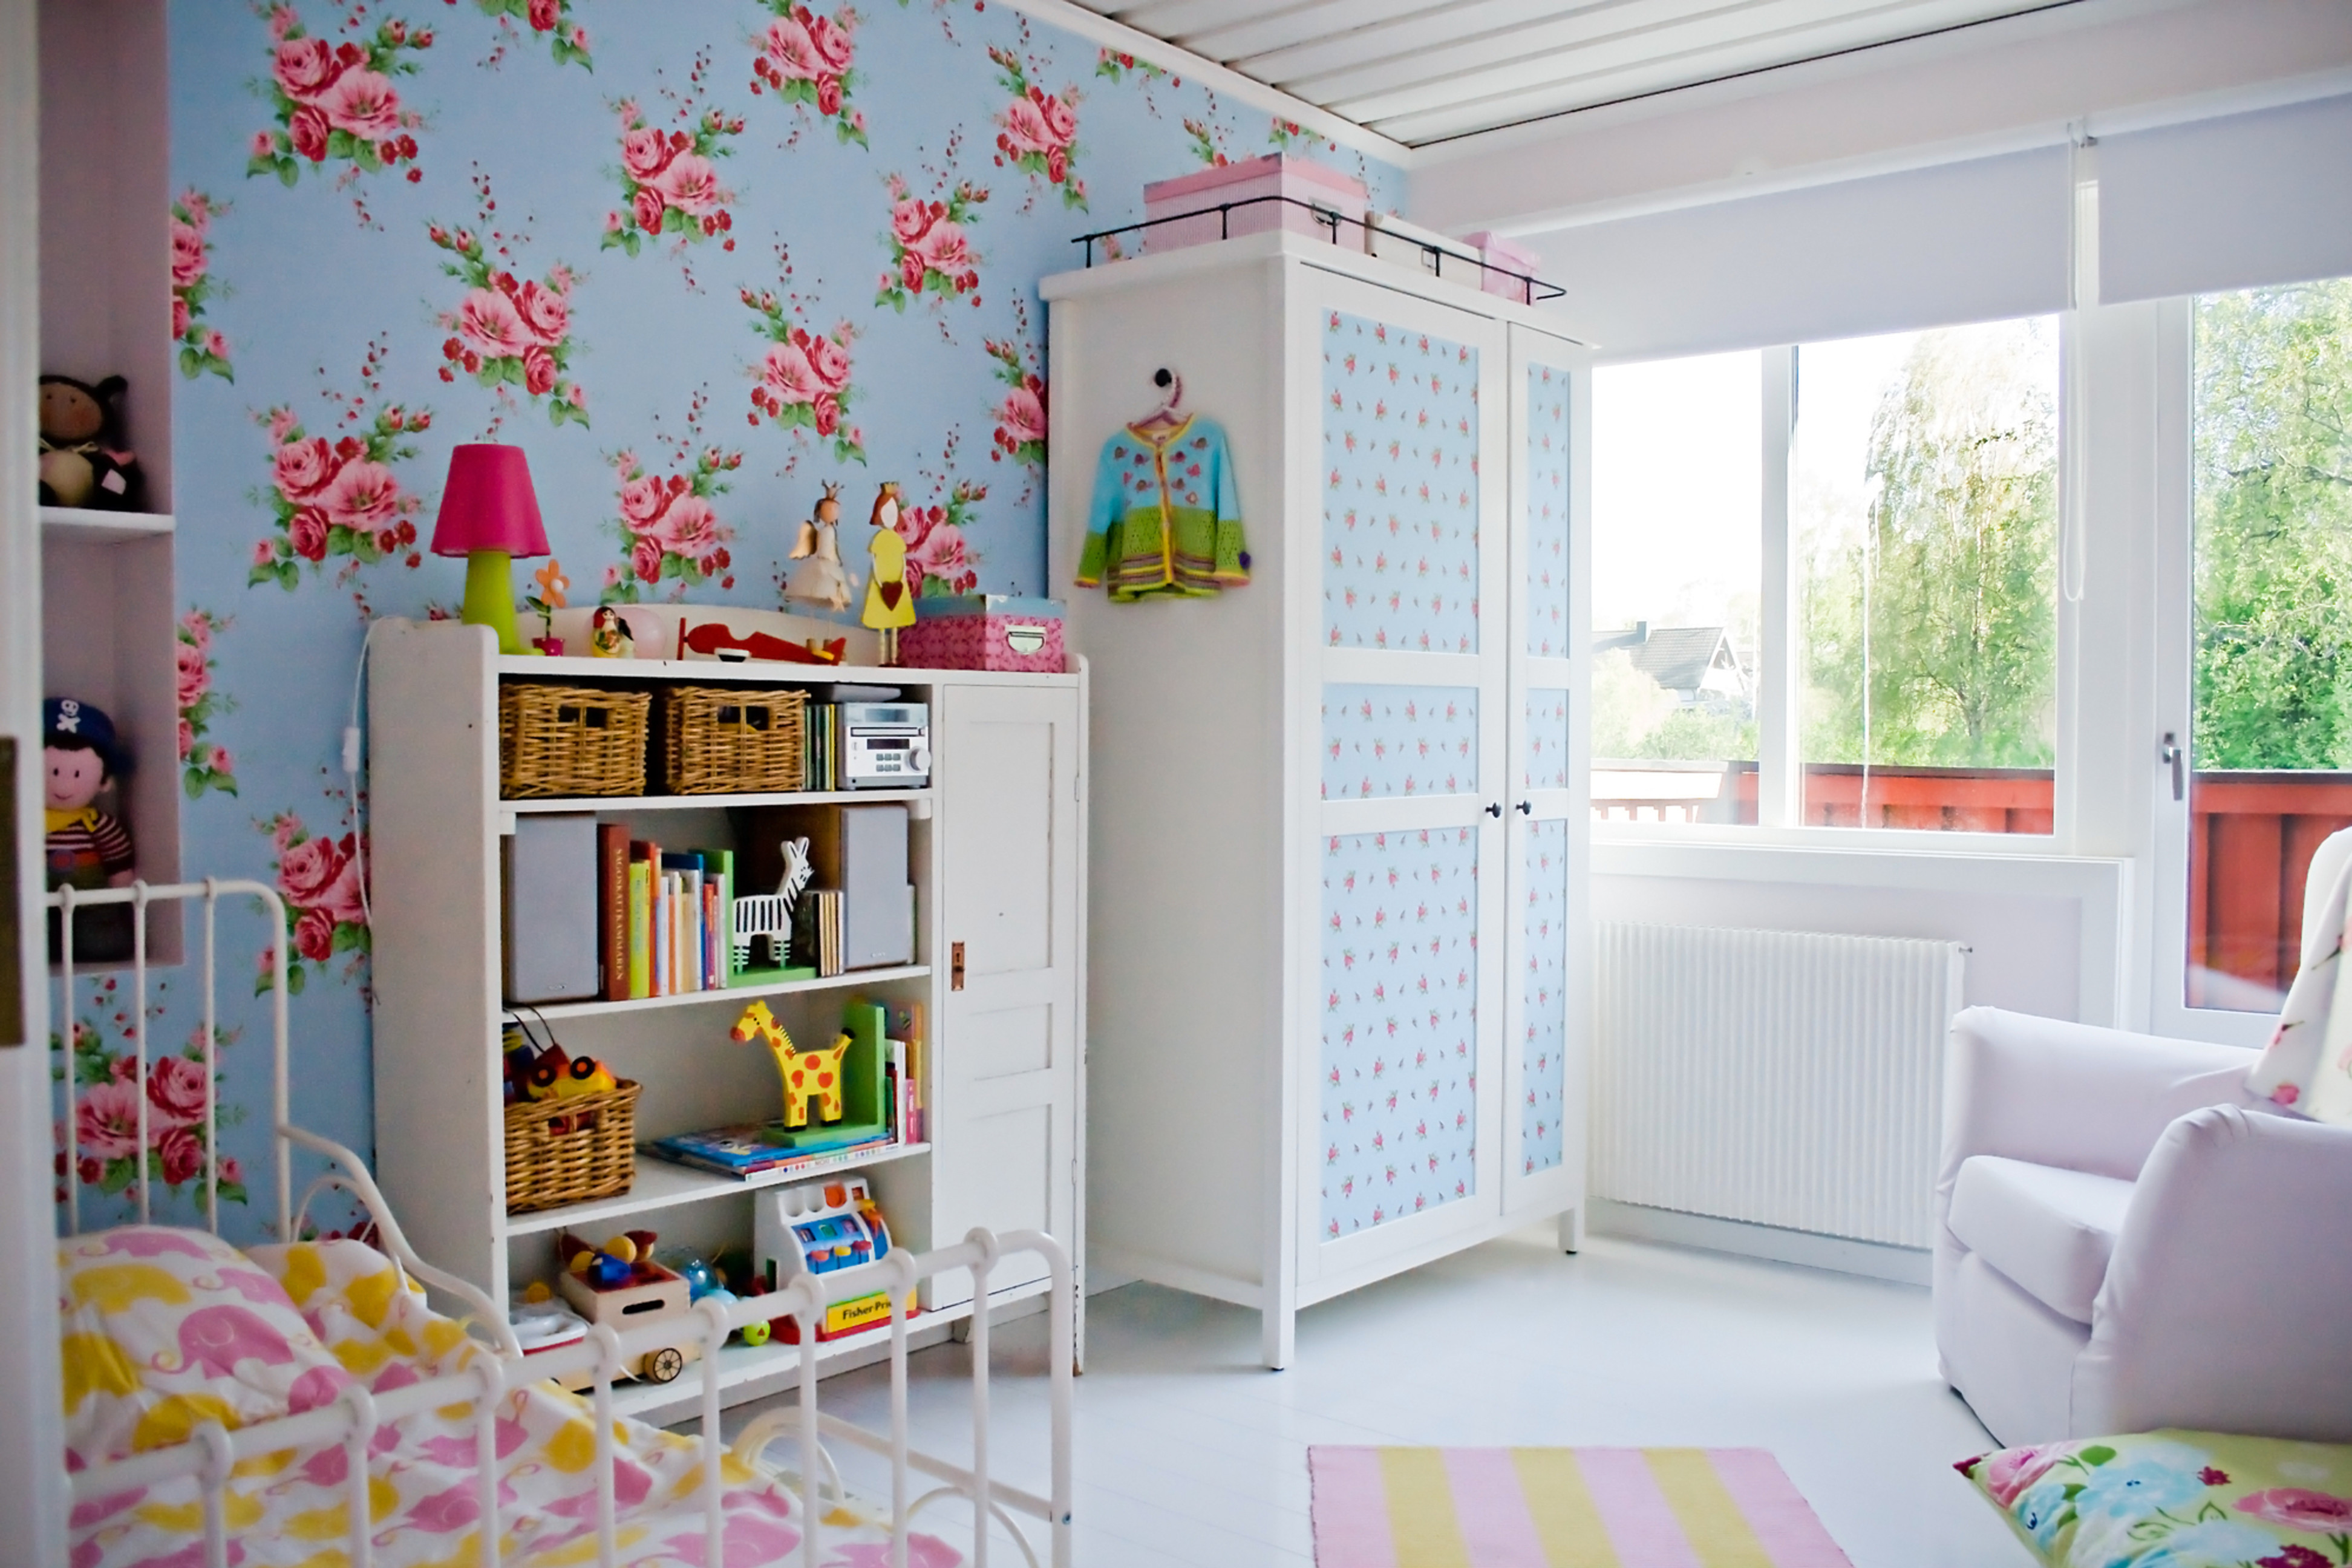 Play Room or Kids's Room Organizing